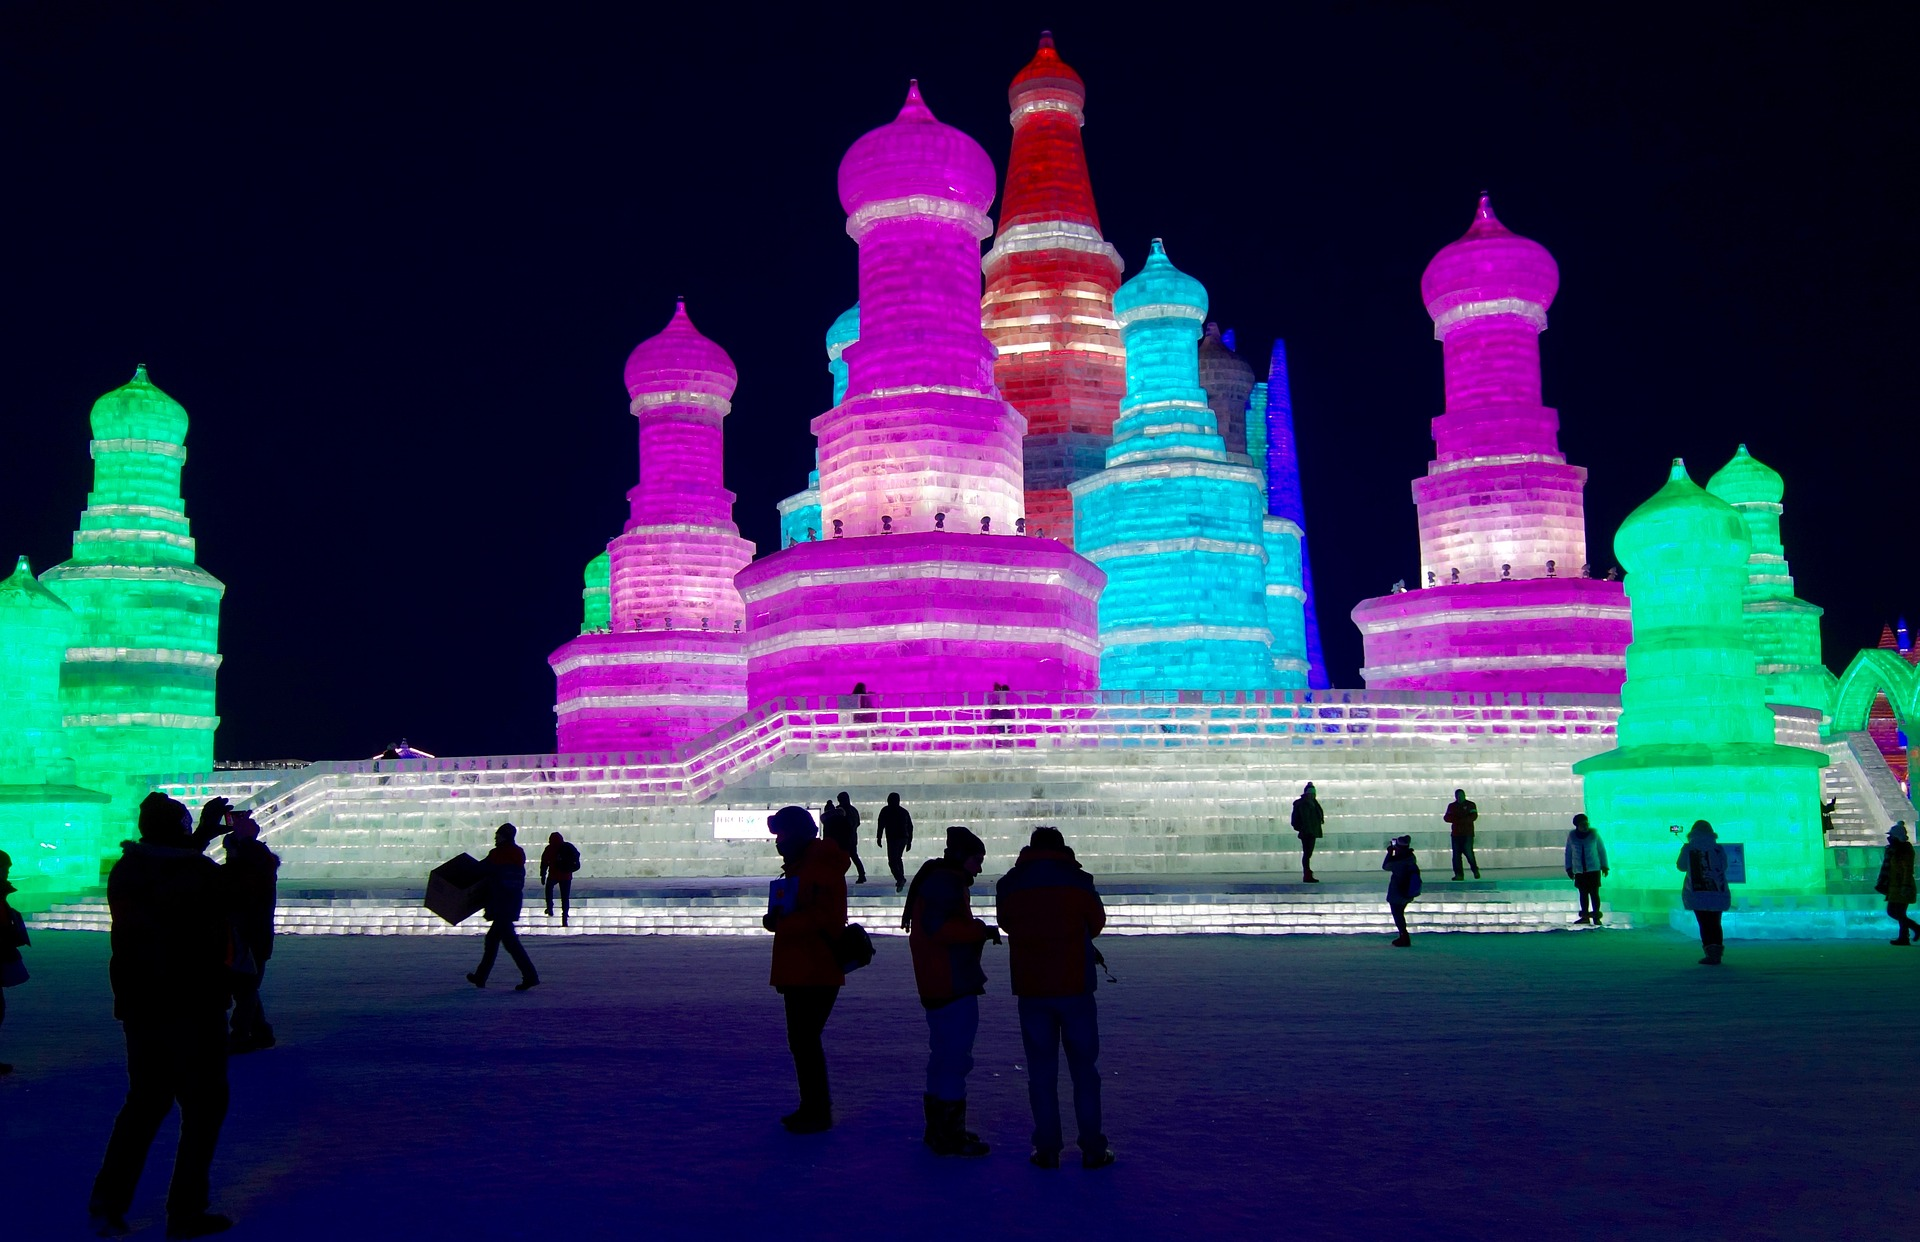 A picture of ice scupltures backlit by colored lights.